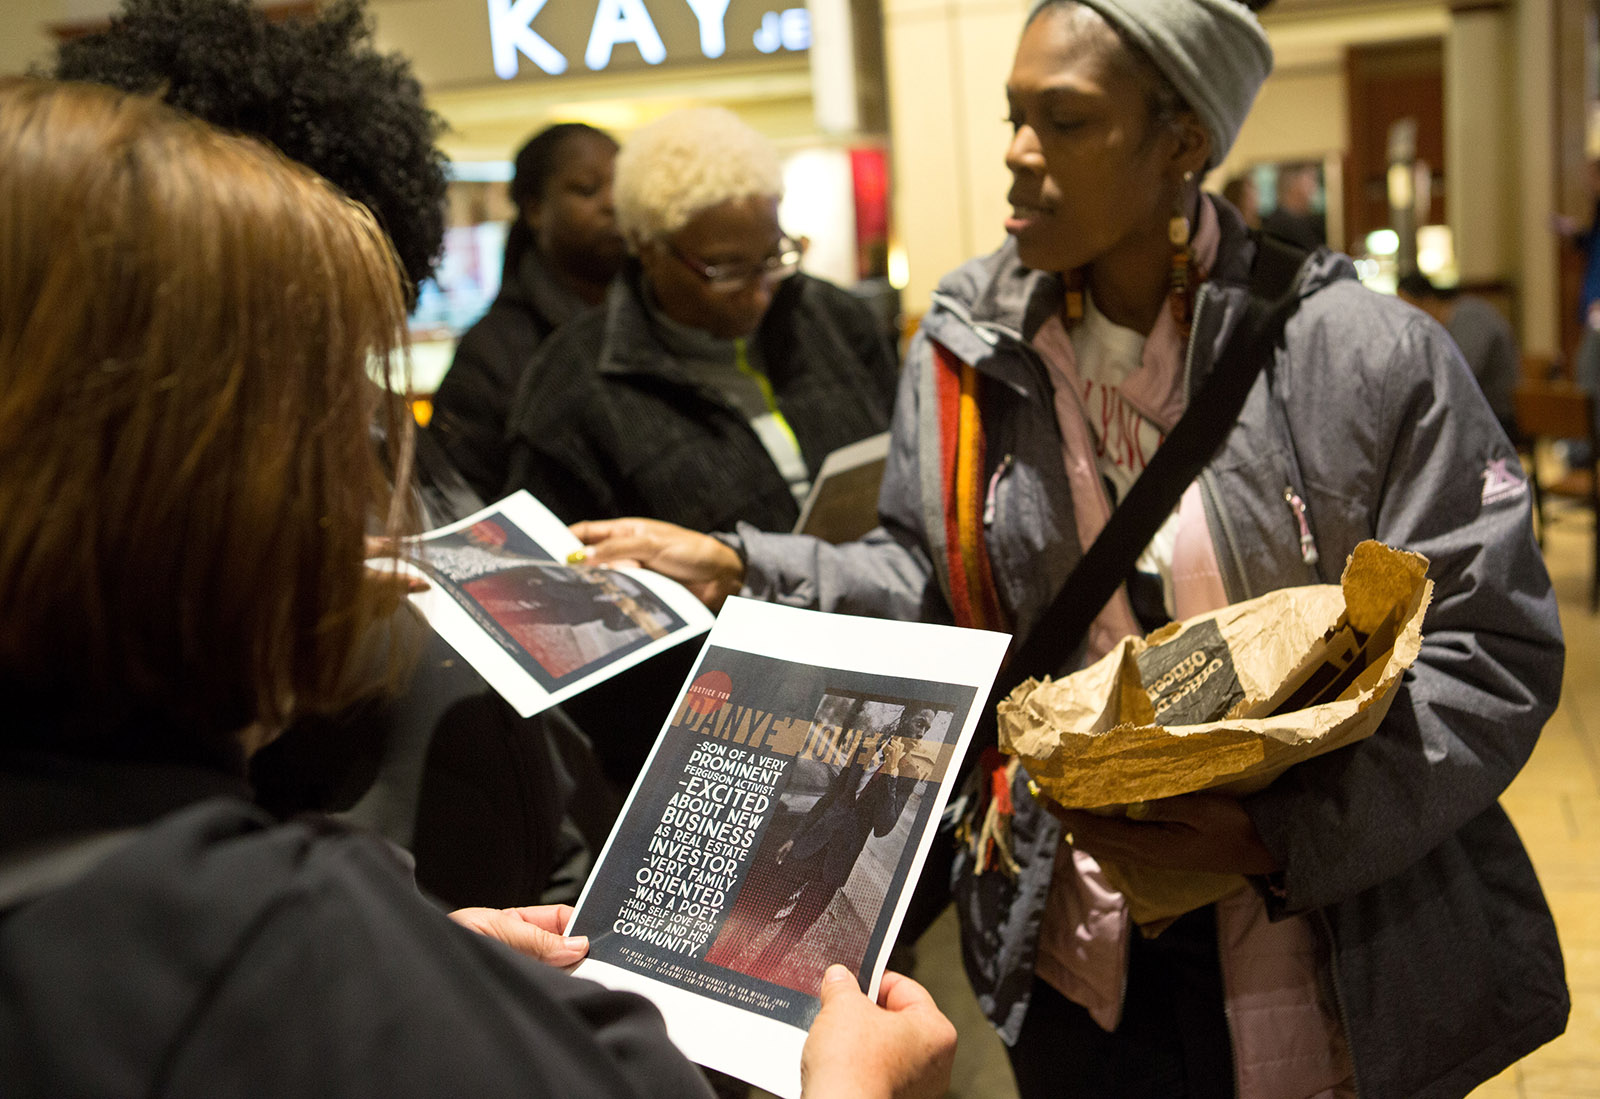 Danye Jones's mother, Melissa McKinnies, handing out flyers concerning the family's efforts to get an investigation of Jones's death, at a St. Louis mall, December 8, 2018